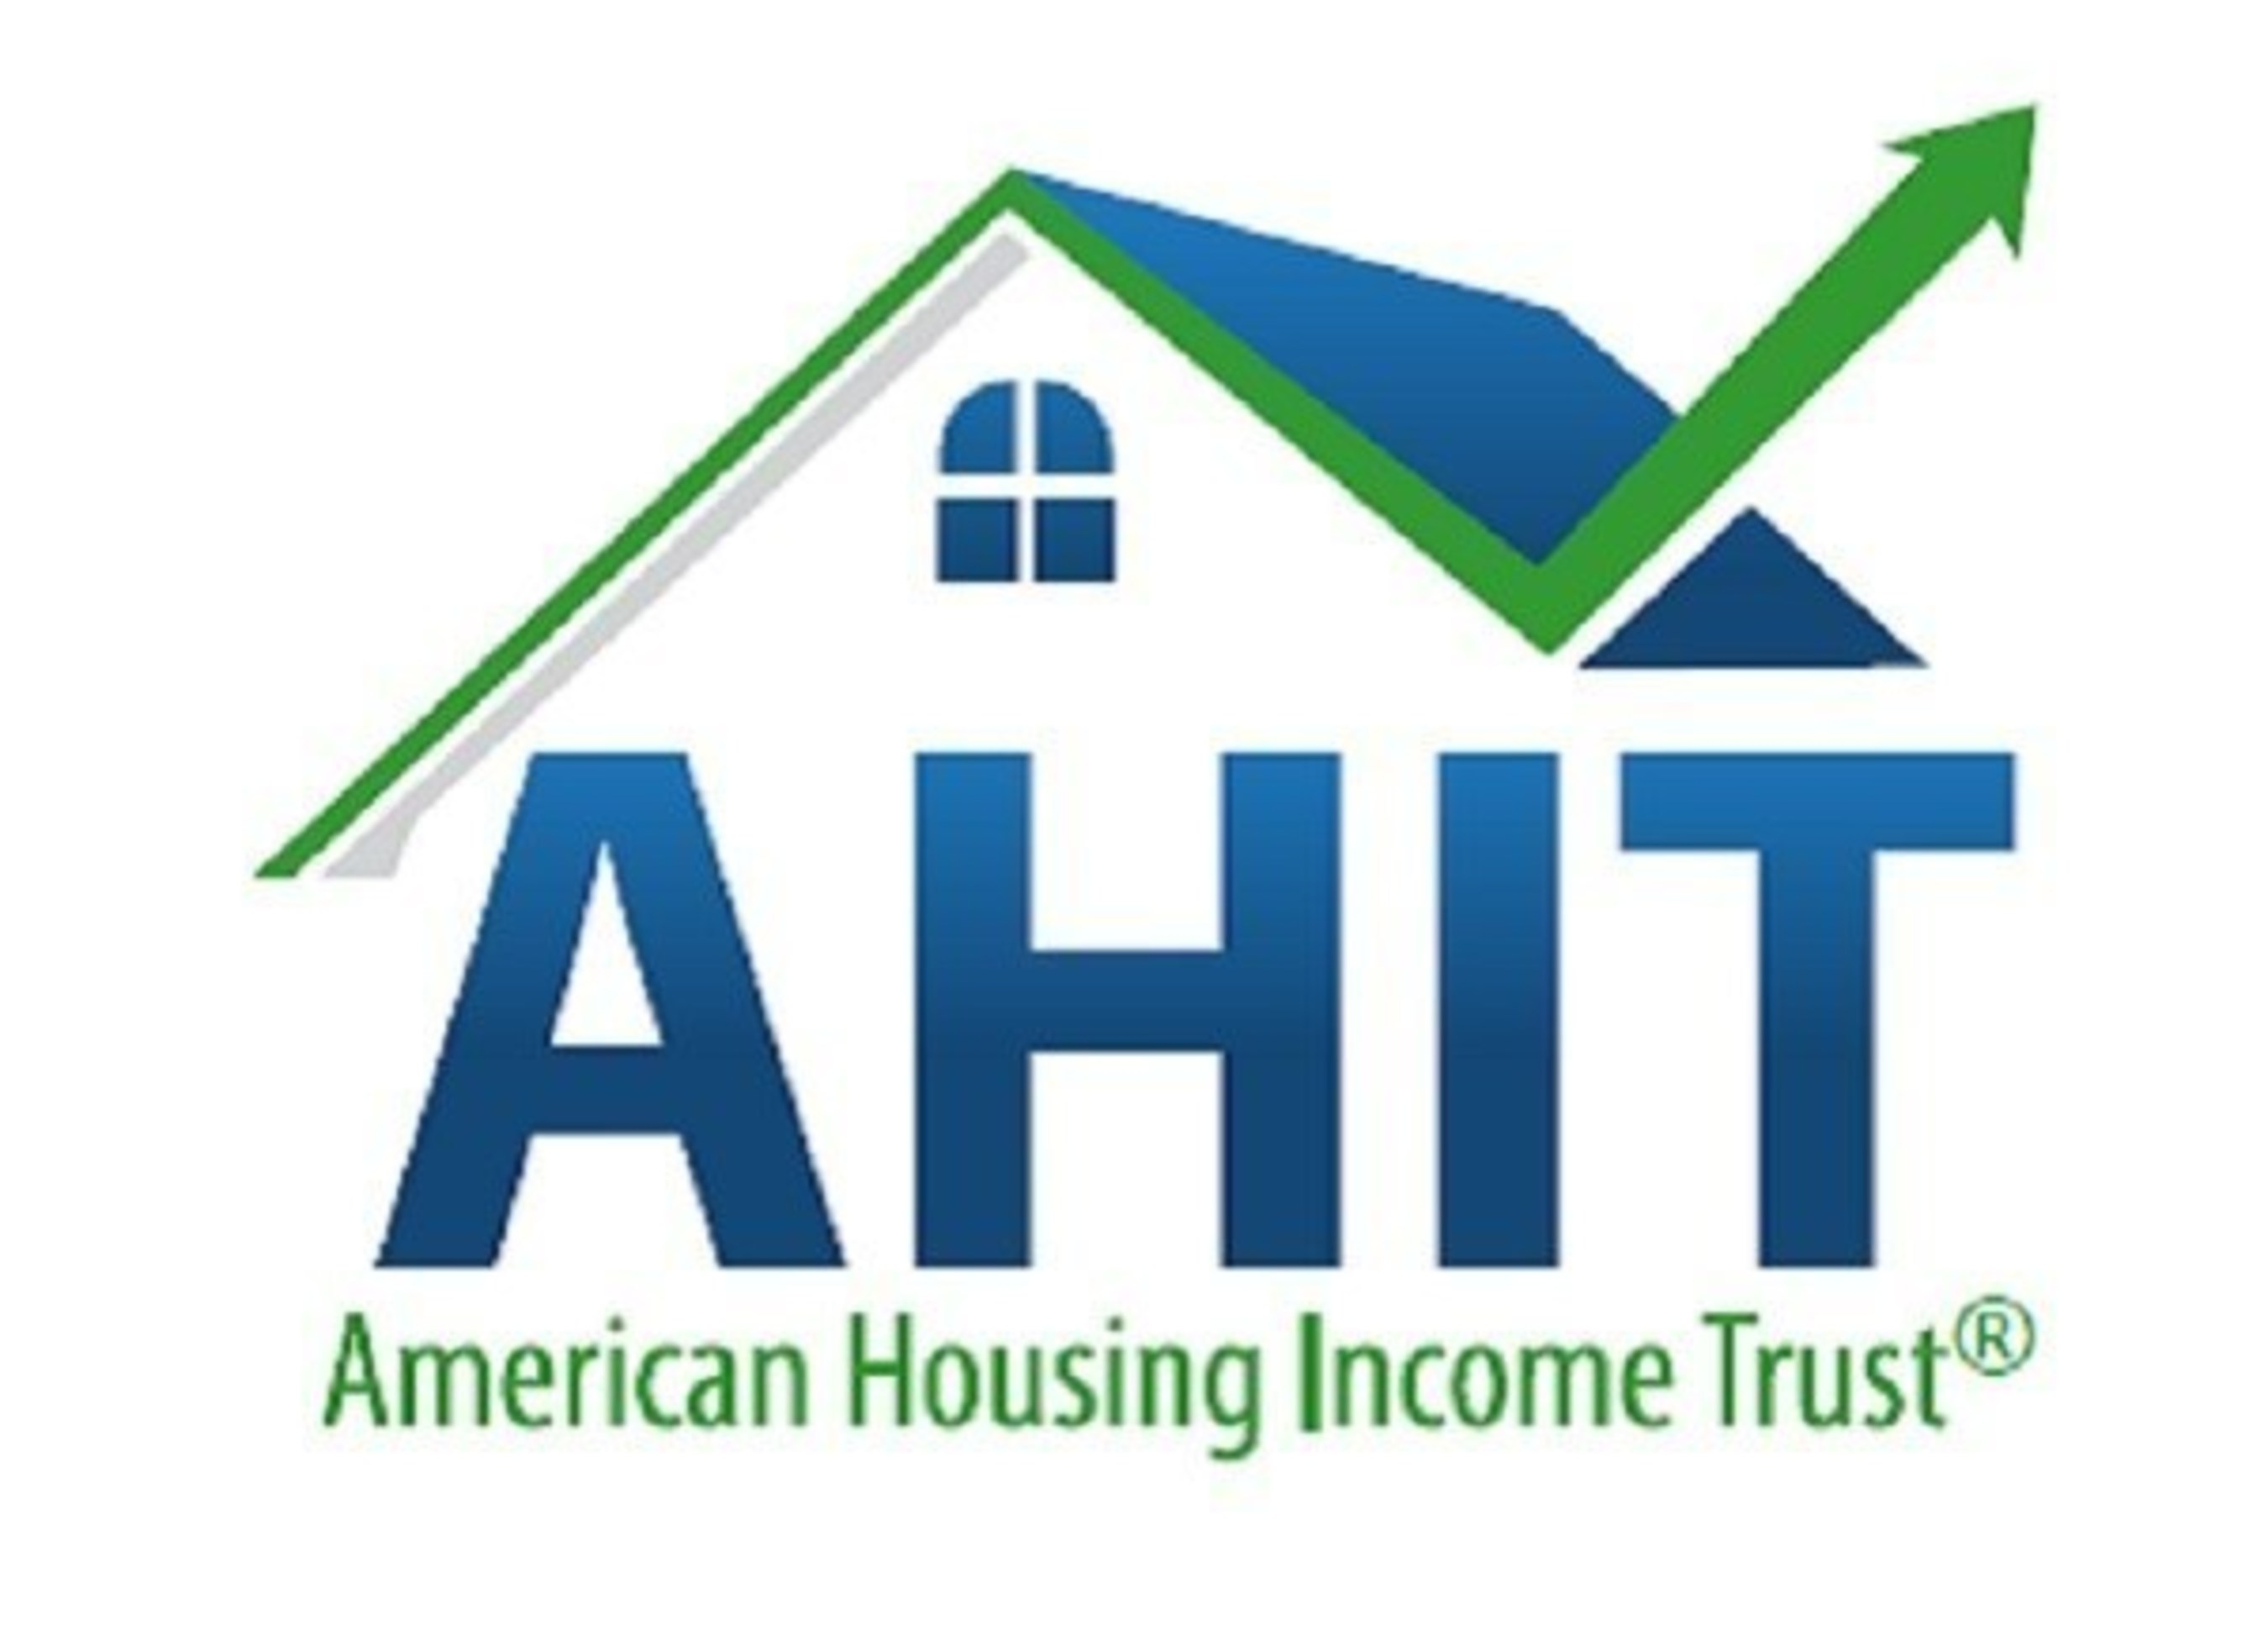 American Housing Income Trust Provides Business Update Highlighted by Achieving 100% Occupancy of its Existing Portfolio of Single-Family Rental Properties